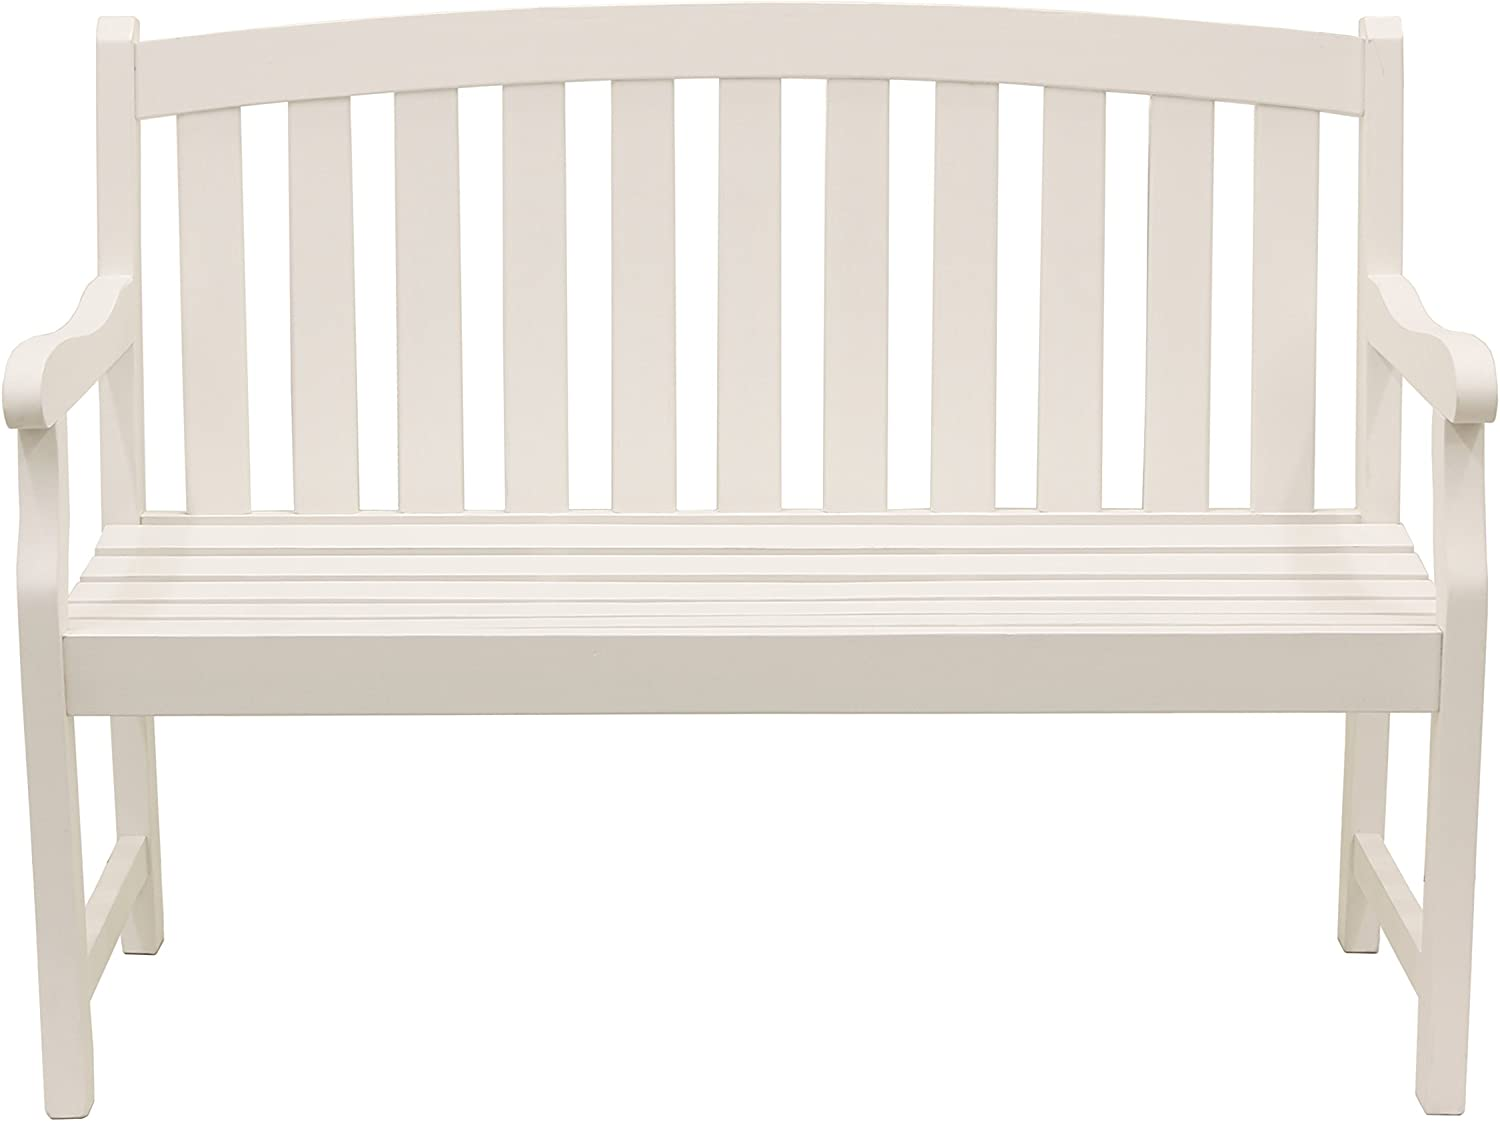 Décor Therapy FR8588 Outdoor Bench, White